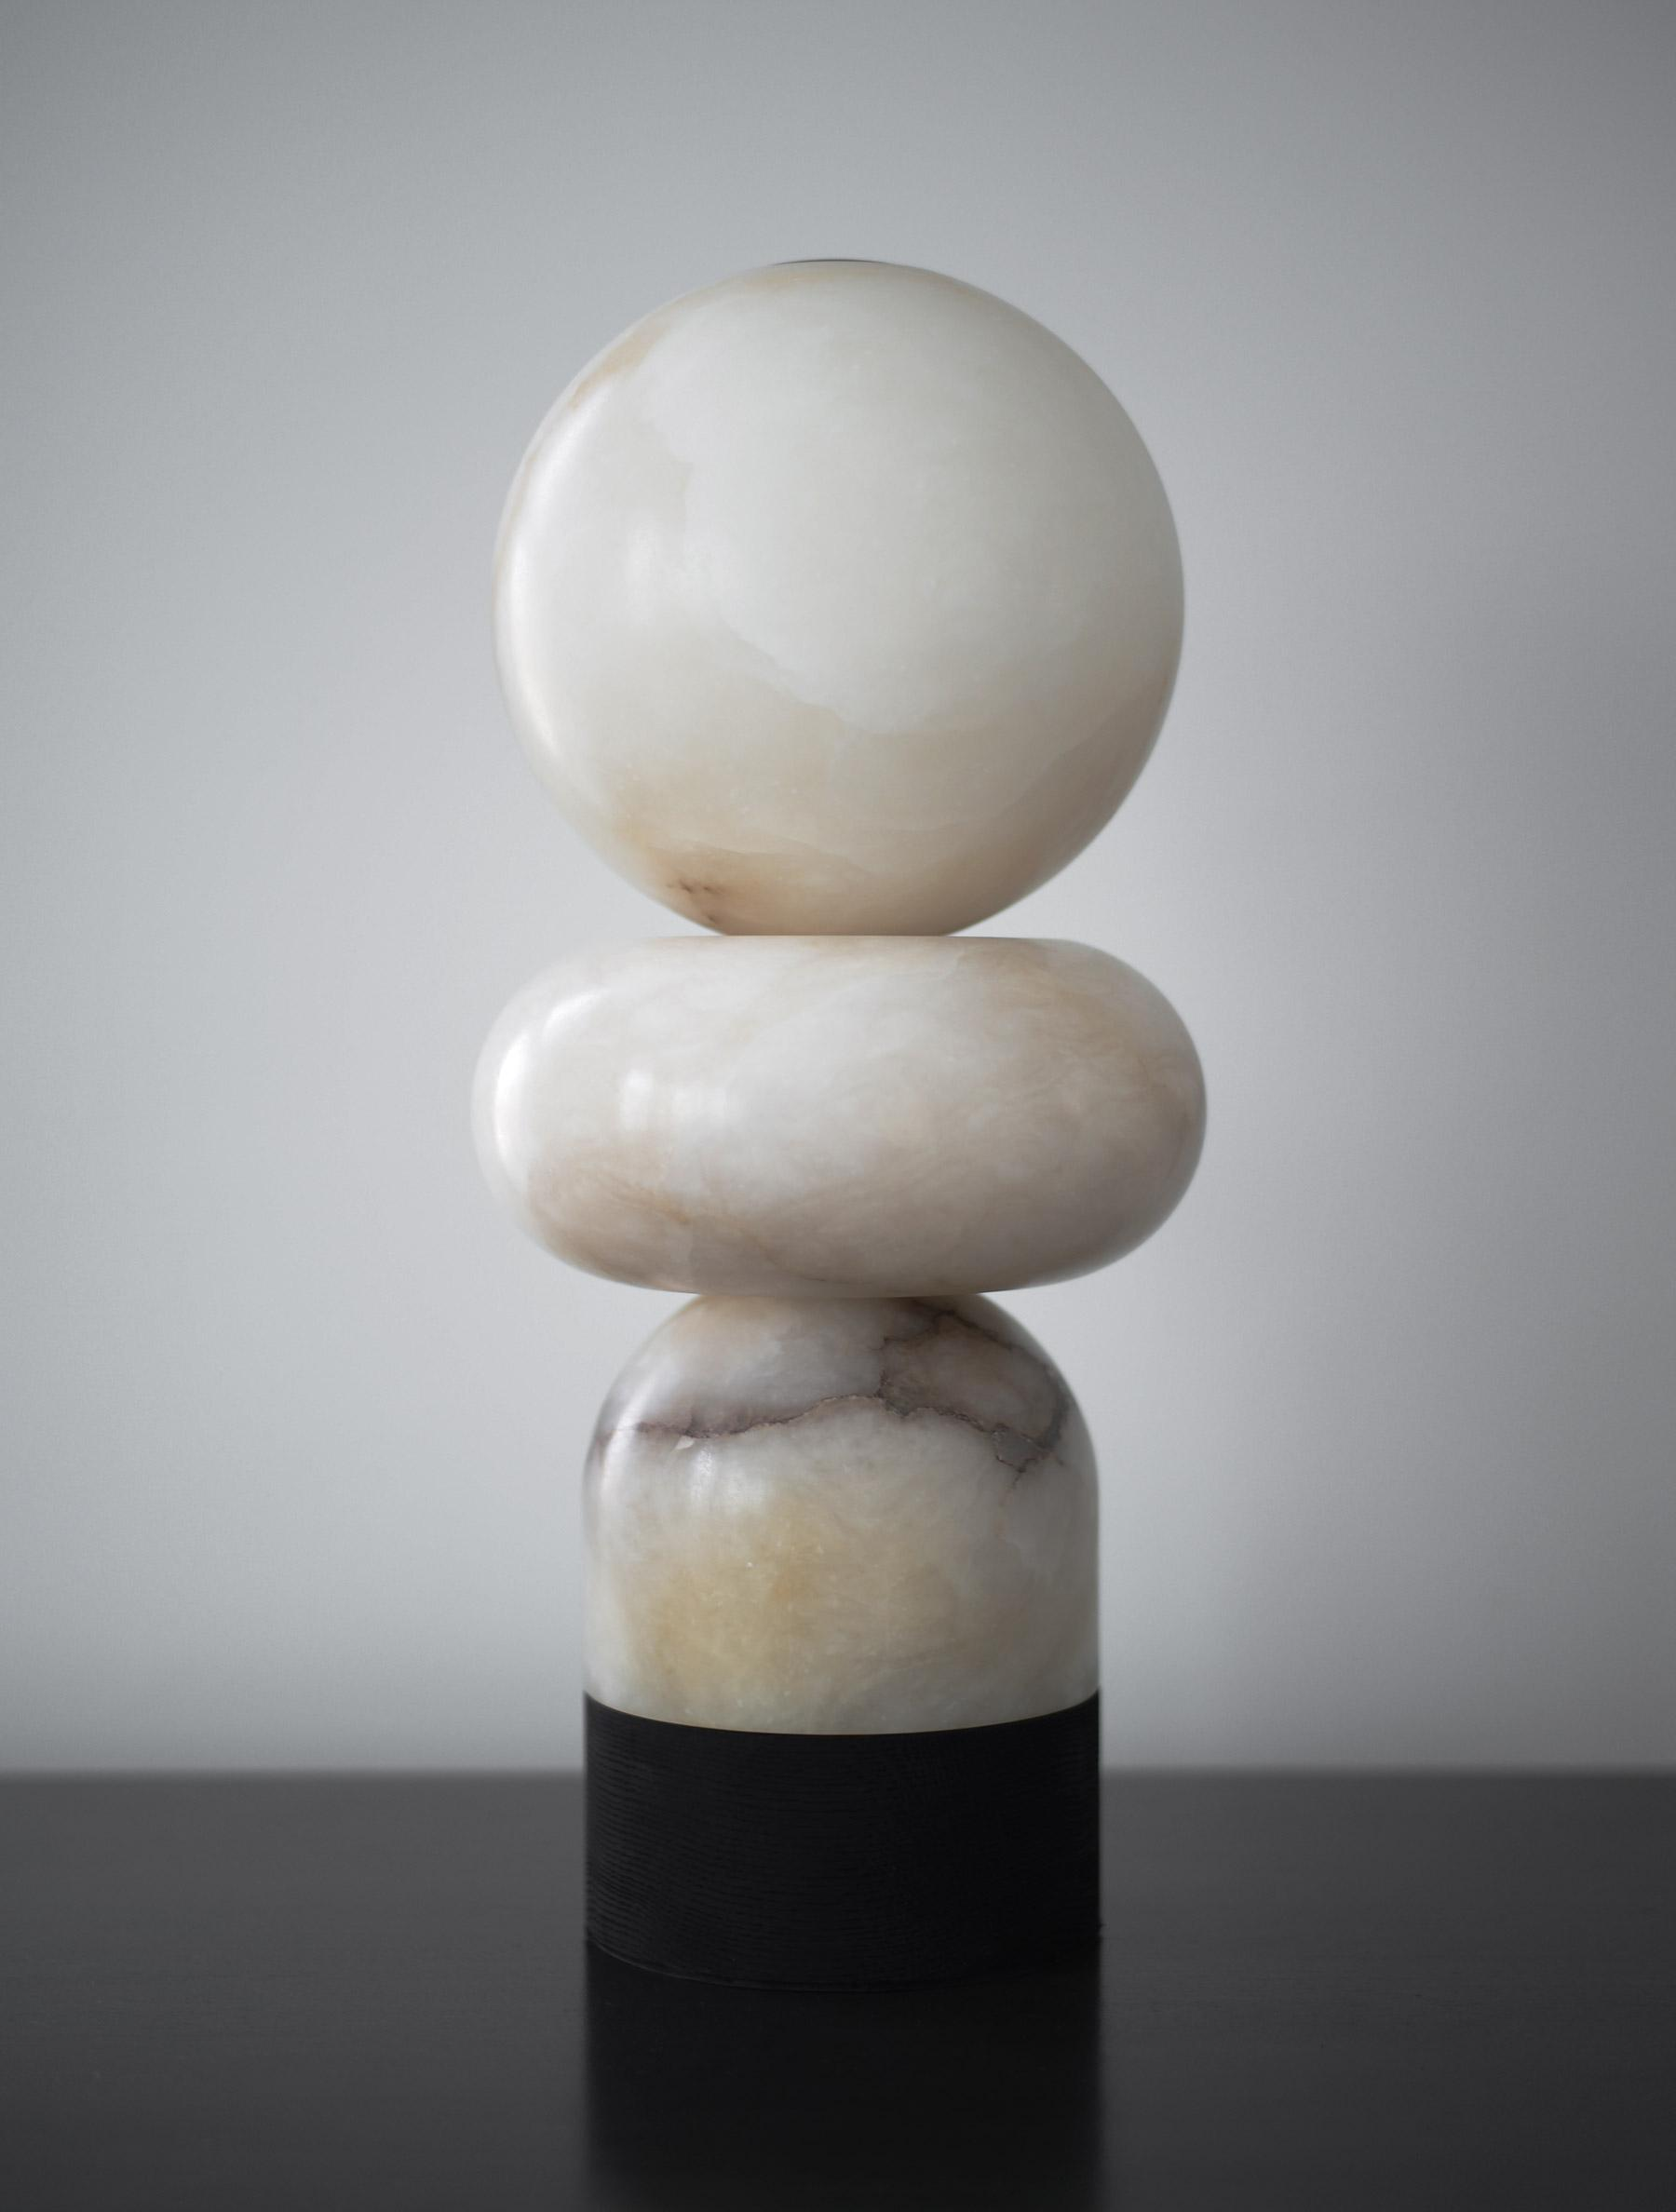 Alabaster Totem 3 Table Lamp shown in Blackened Ash, and Alabaster